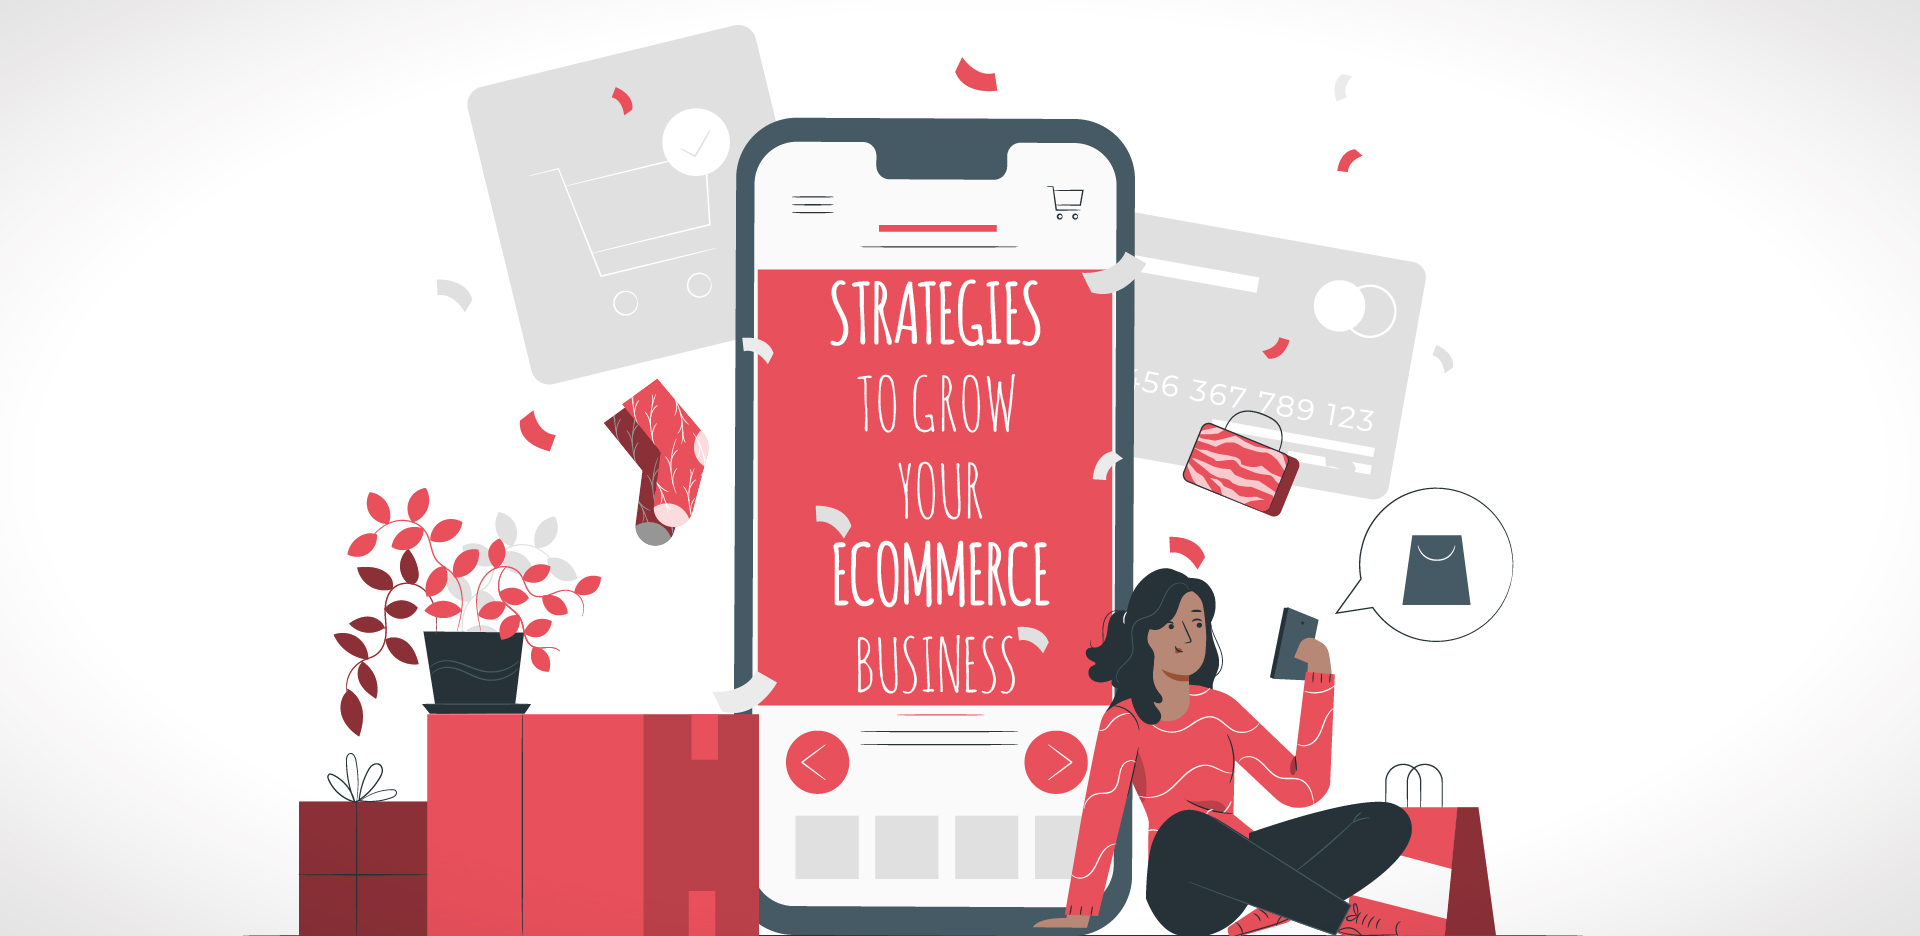 7 Strategies to Grow Your eCommerce Business in 2020